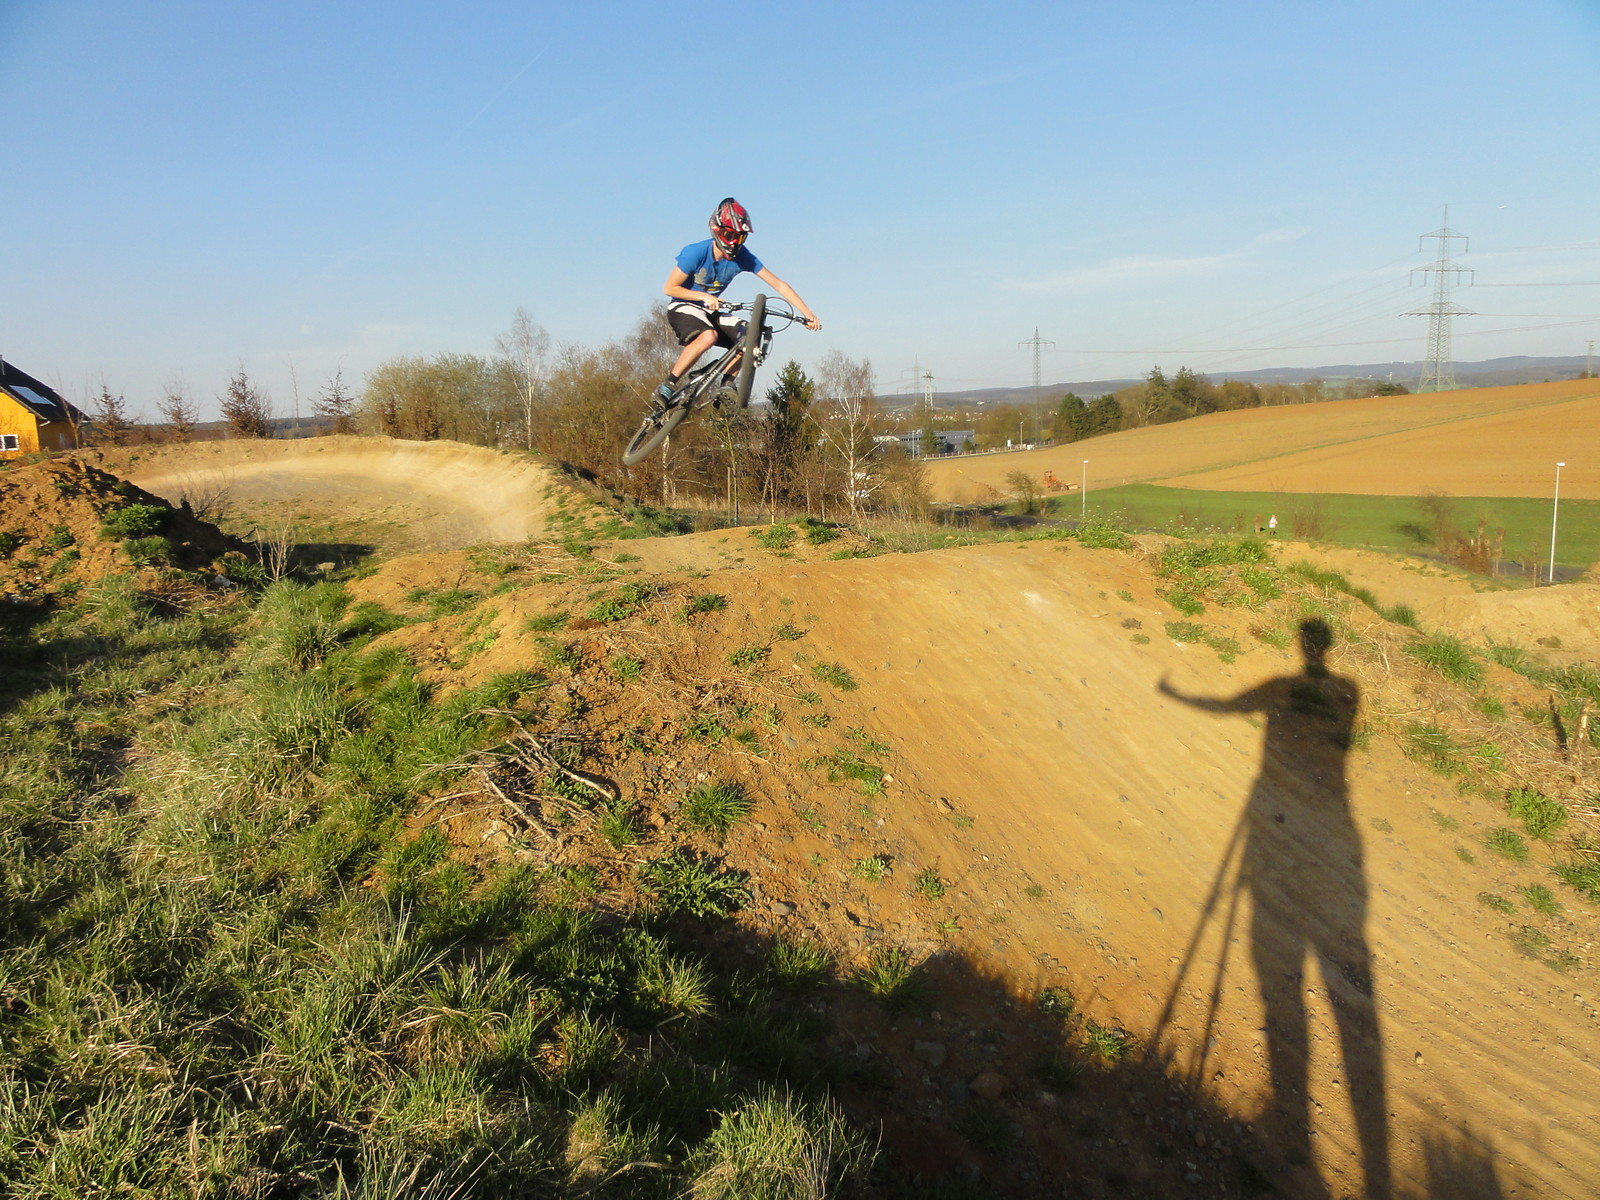 Schwalmstadt 4x - Gweggy - Mountain Biking Pictures - Vital MTB